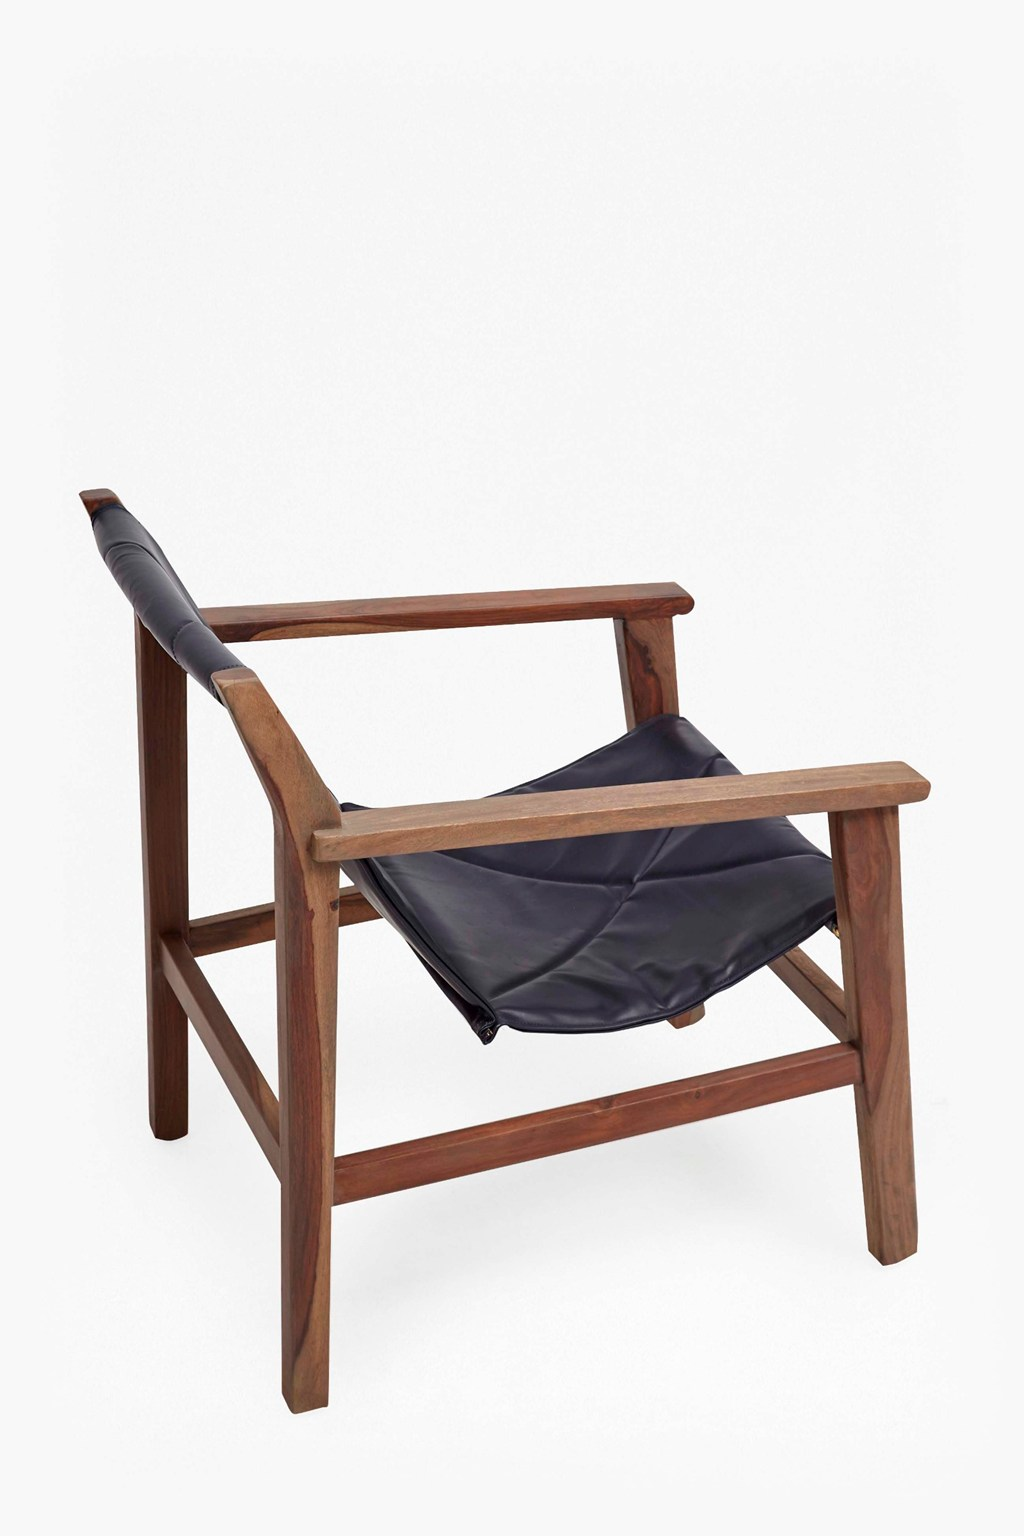 Modern sling chairs - Loading Images